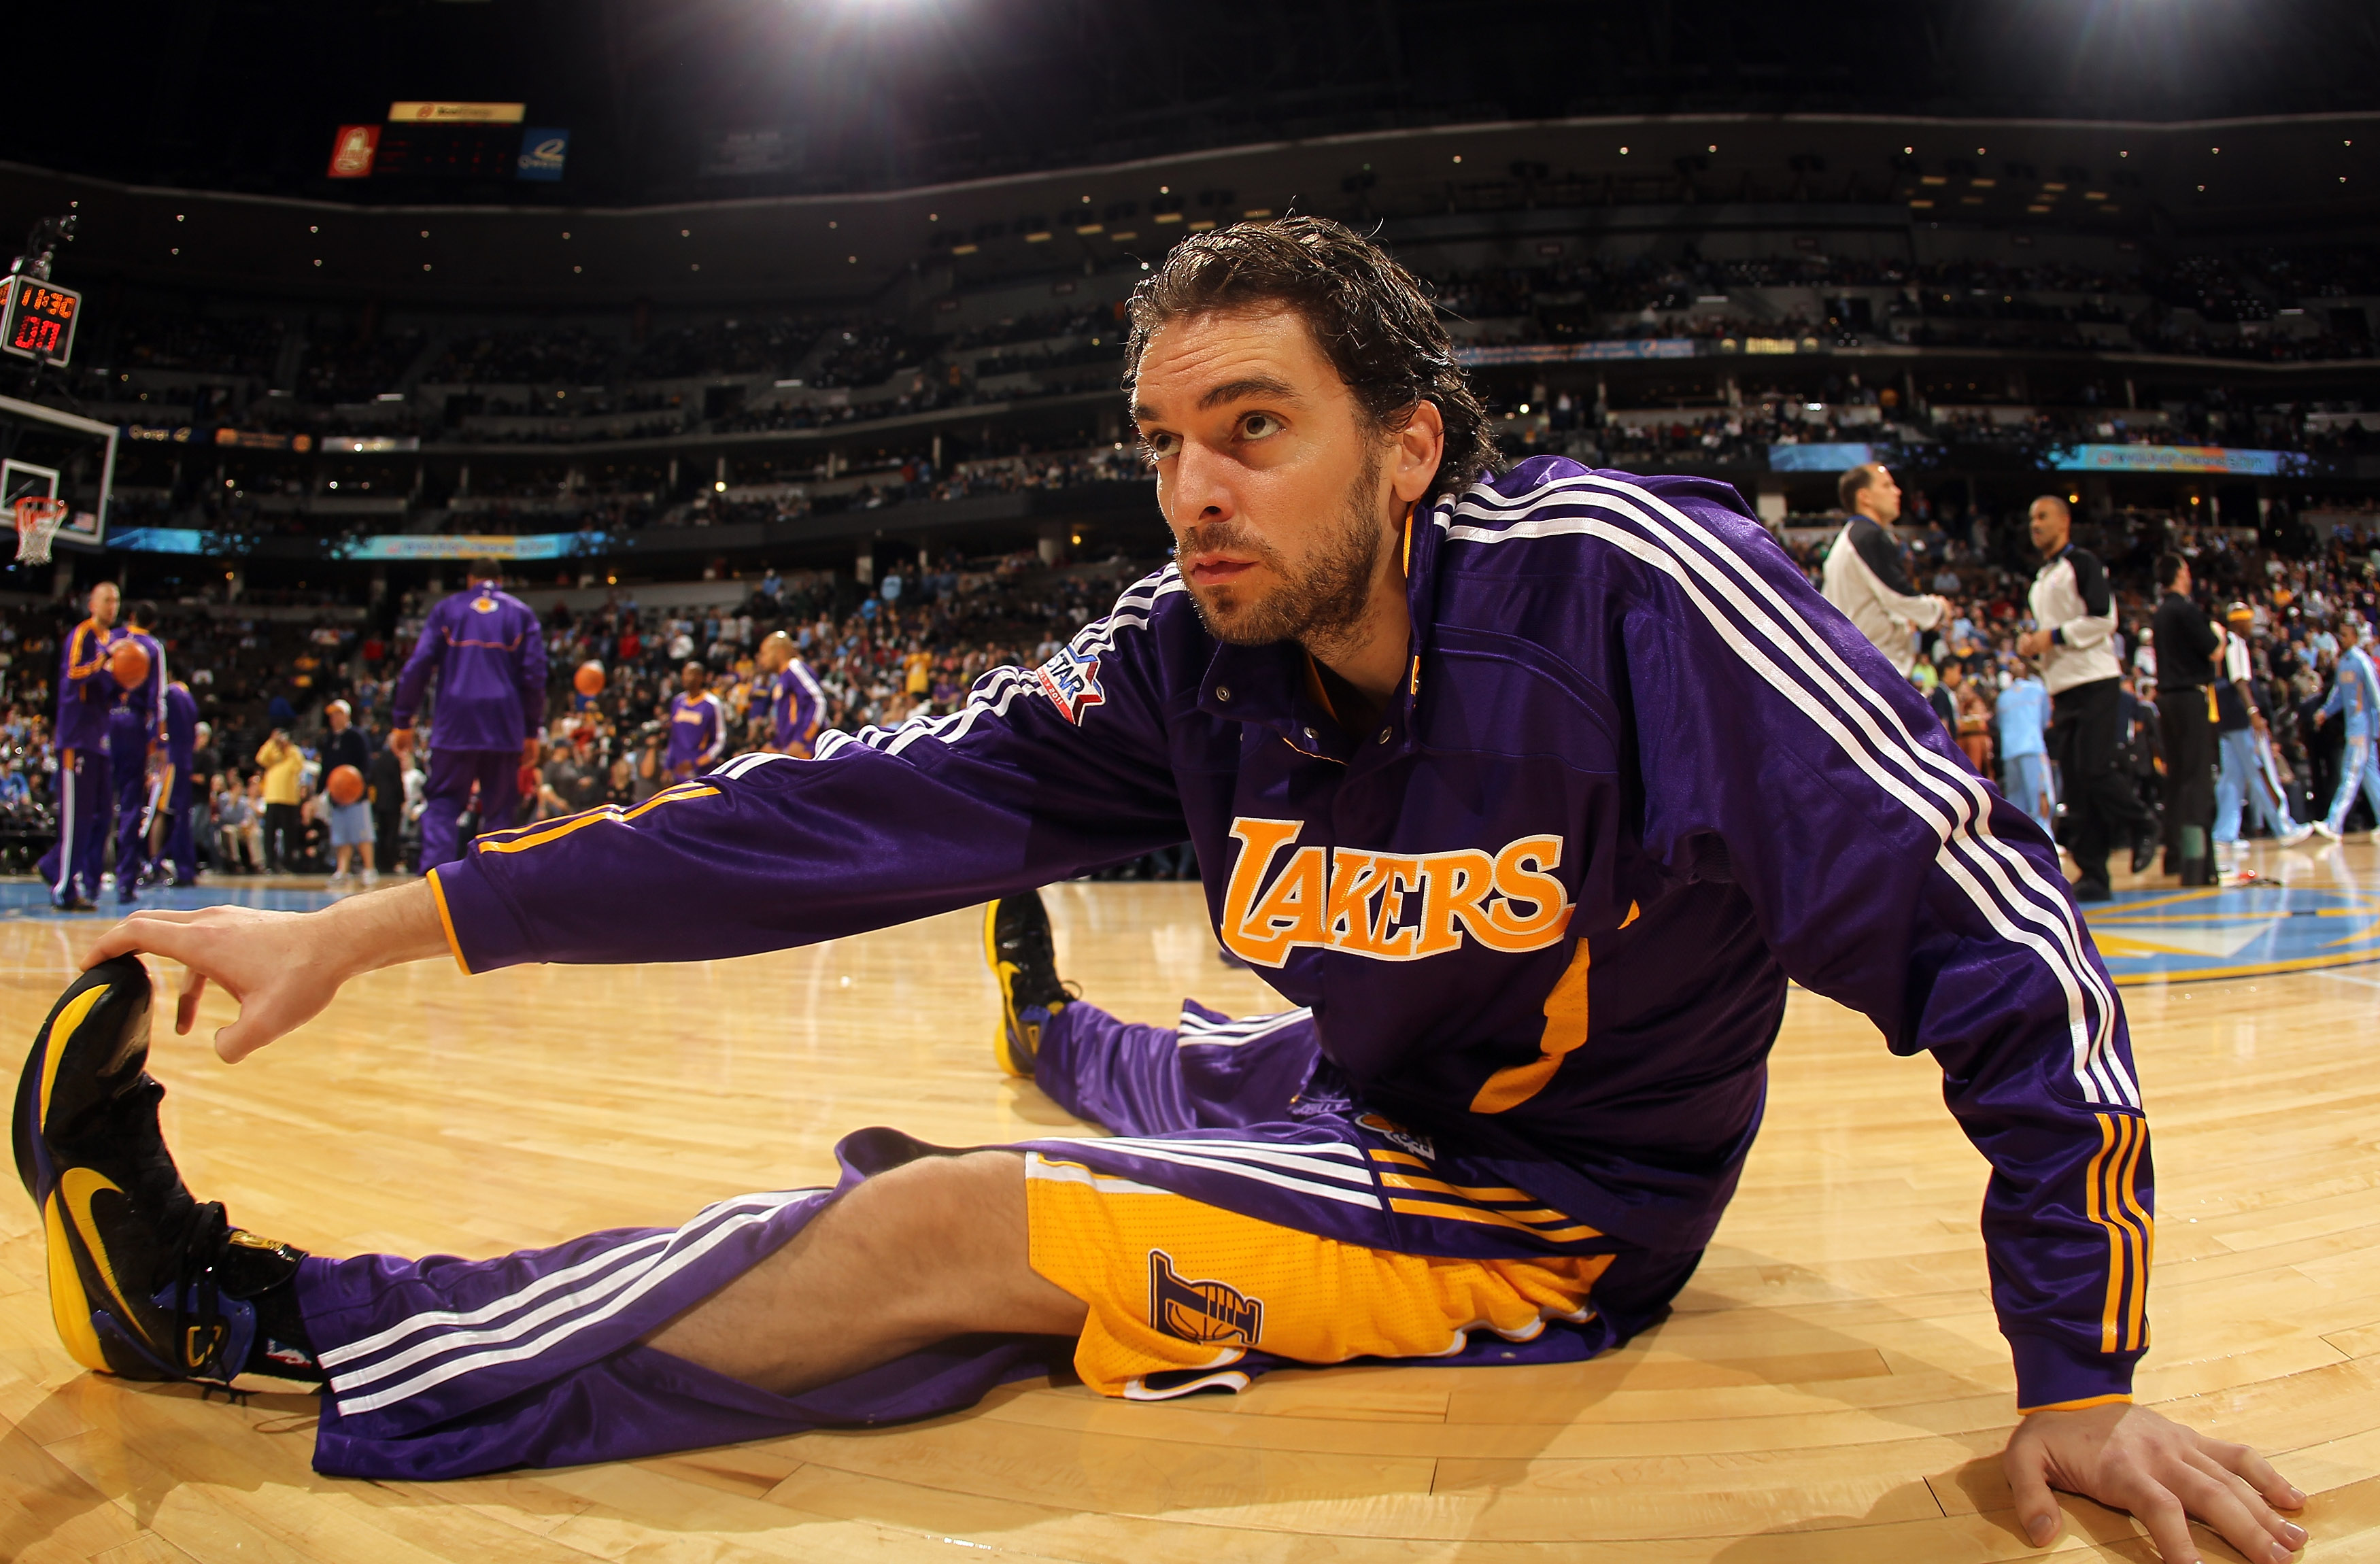 DENVER - NOVEMBER 11:  Pau Gasol #16 of the Los Angeles Lakers stretches prior to facing the Denver Nuggets at the Pepsi Center on November 11, 2010 in Denver, Colorado. The Nuggets defeated the Lakers 118-112.  NOTE TO USER: User expressly acknowledges a